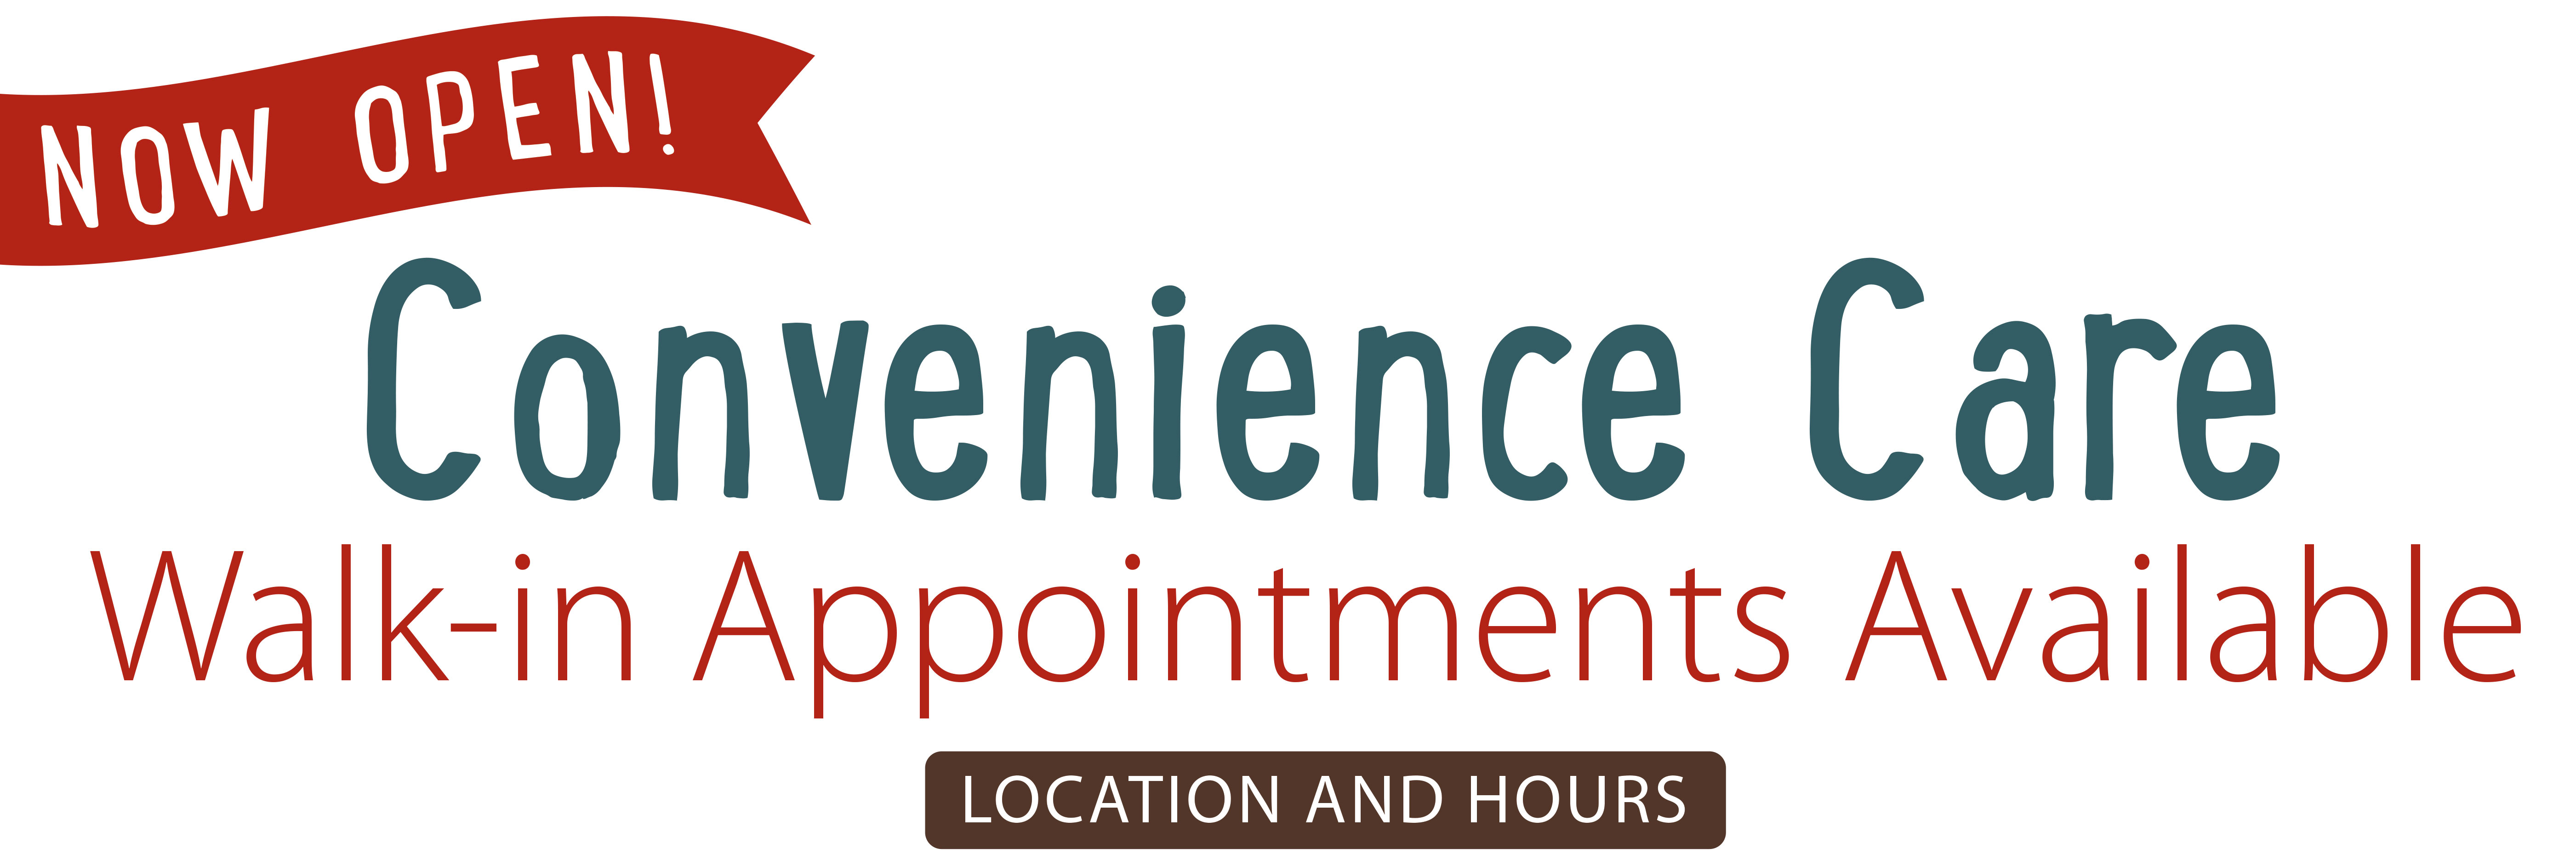 Now Open! Convenience Care with walk-in appointments available